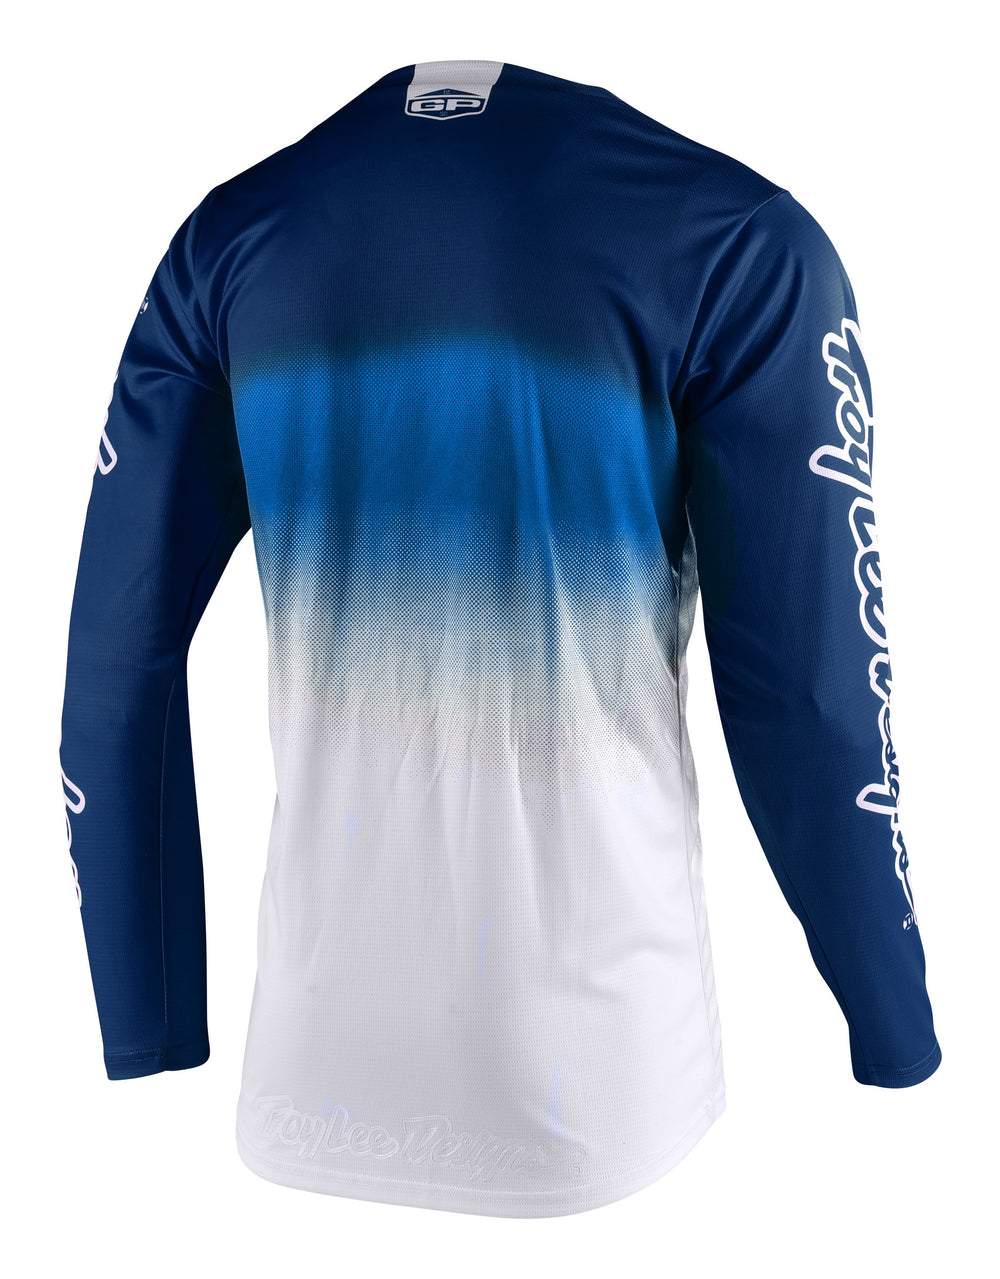 GP JERSEY STAIN'D NAVY / WHITE